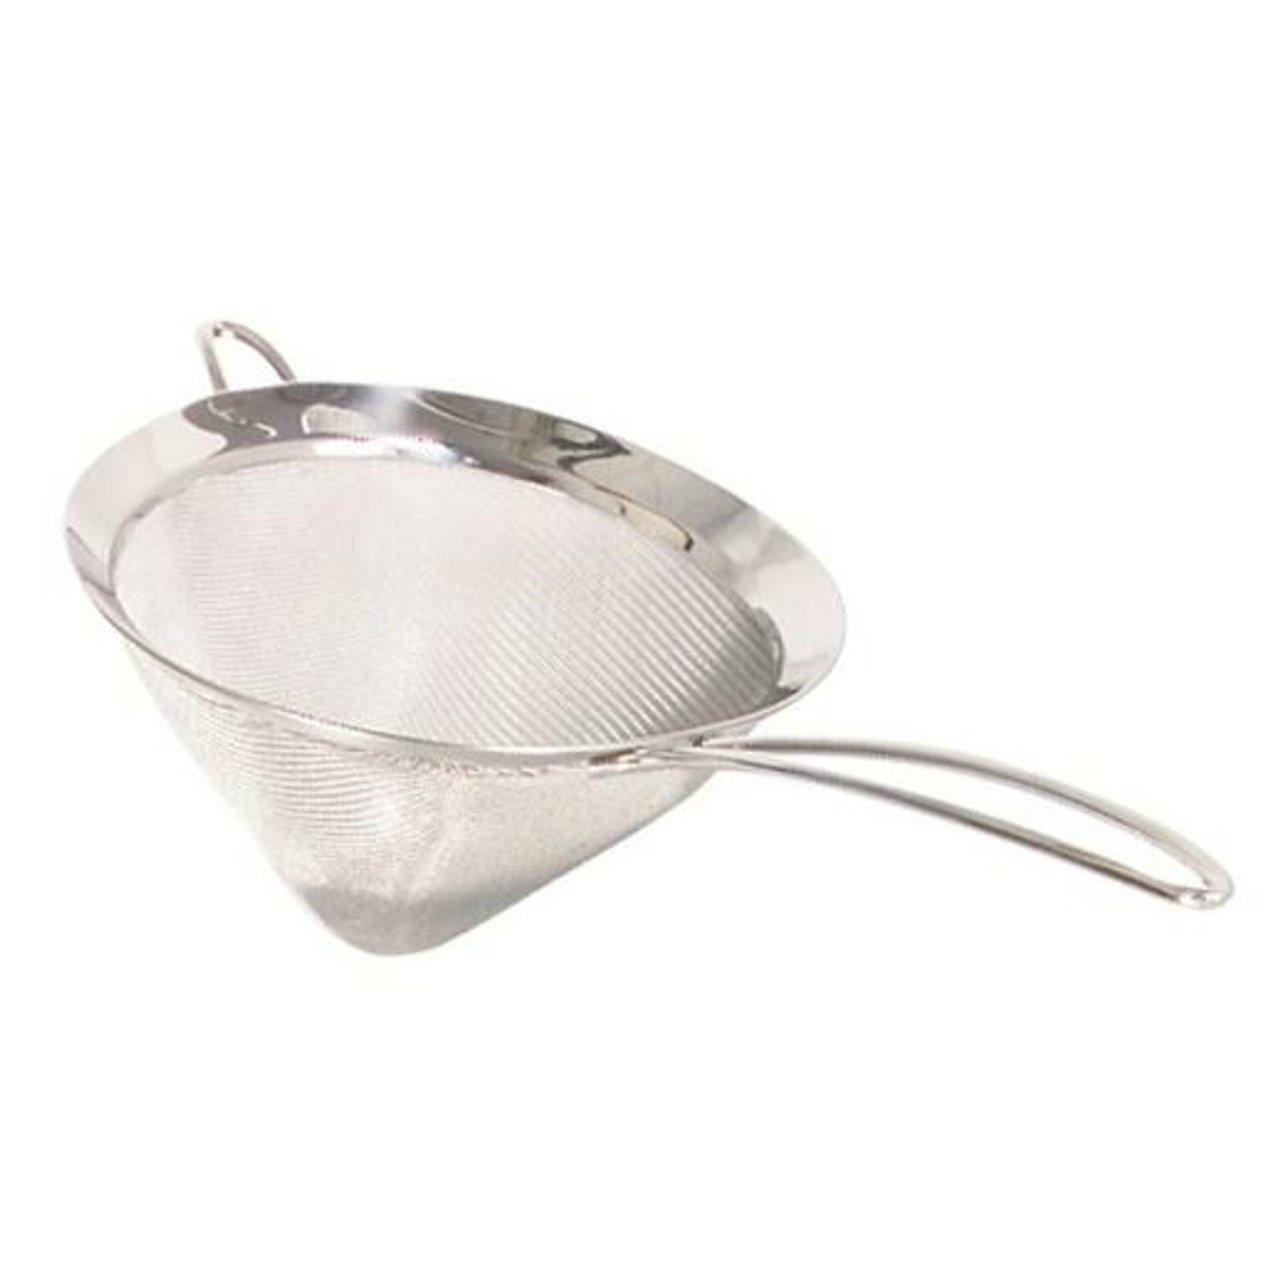 CUISIPRO MESH STRAINER CONE 5.5""